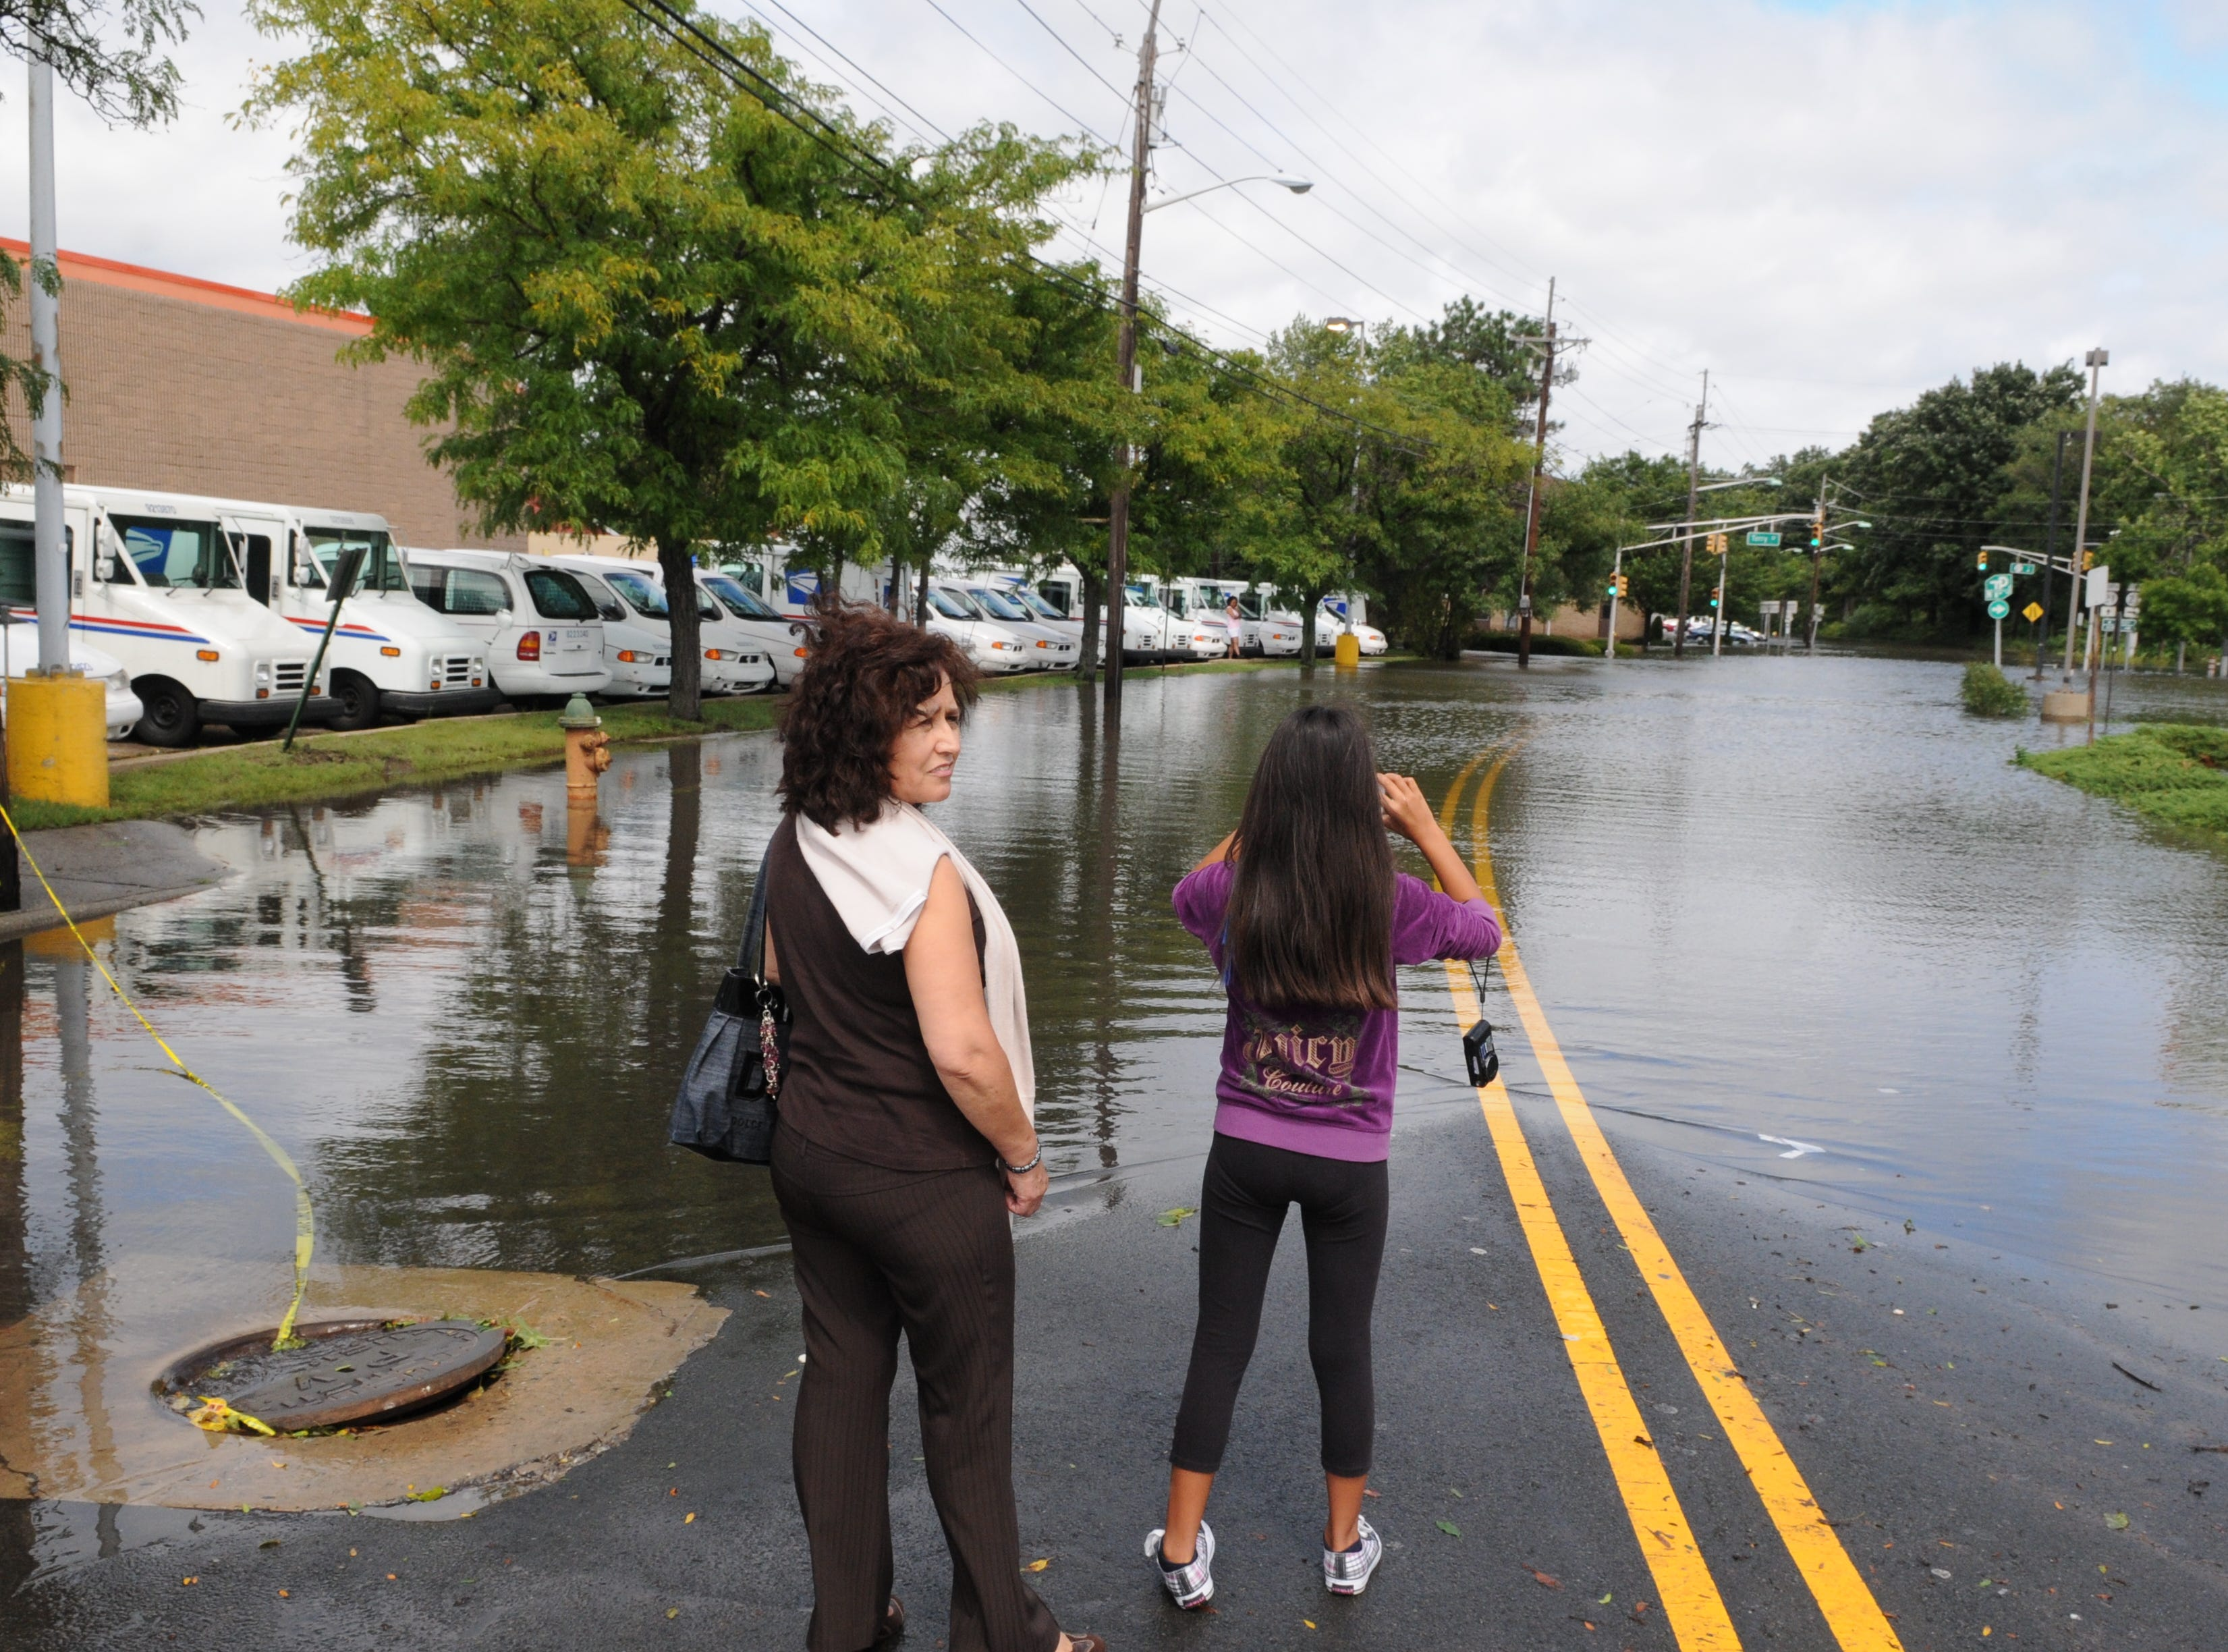 Aug. 28, 2011: The aftereffects of Hurricane Irene's visit are still in evident in Belleville.  Residents investigate and photograph flooding on River Road.